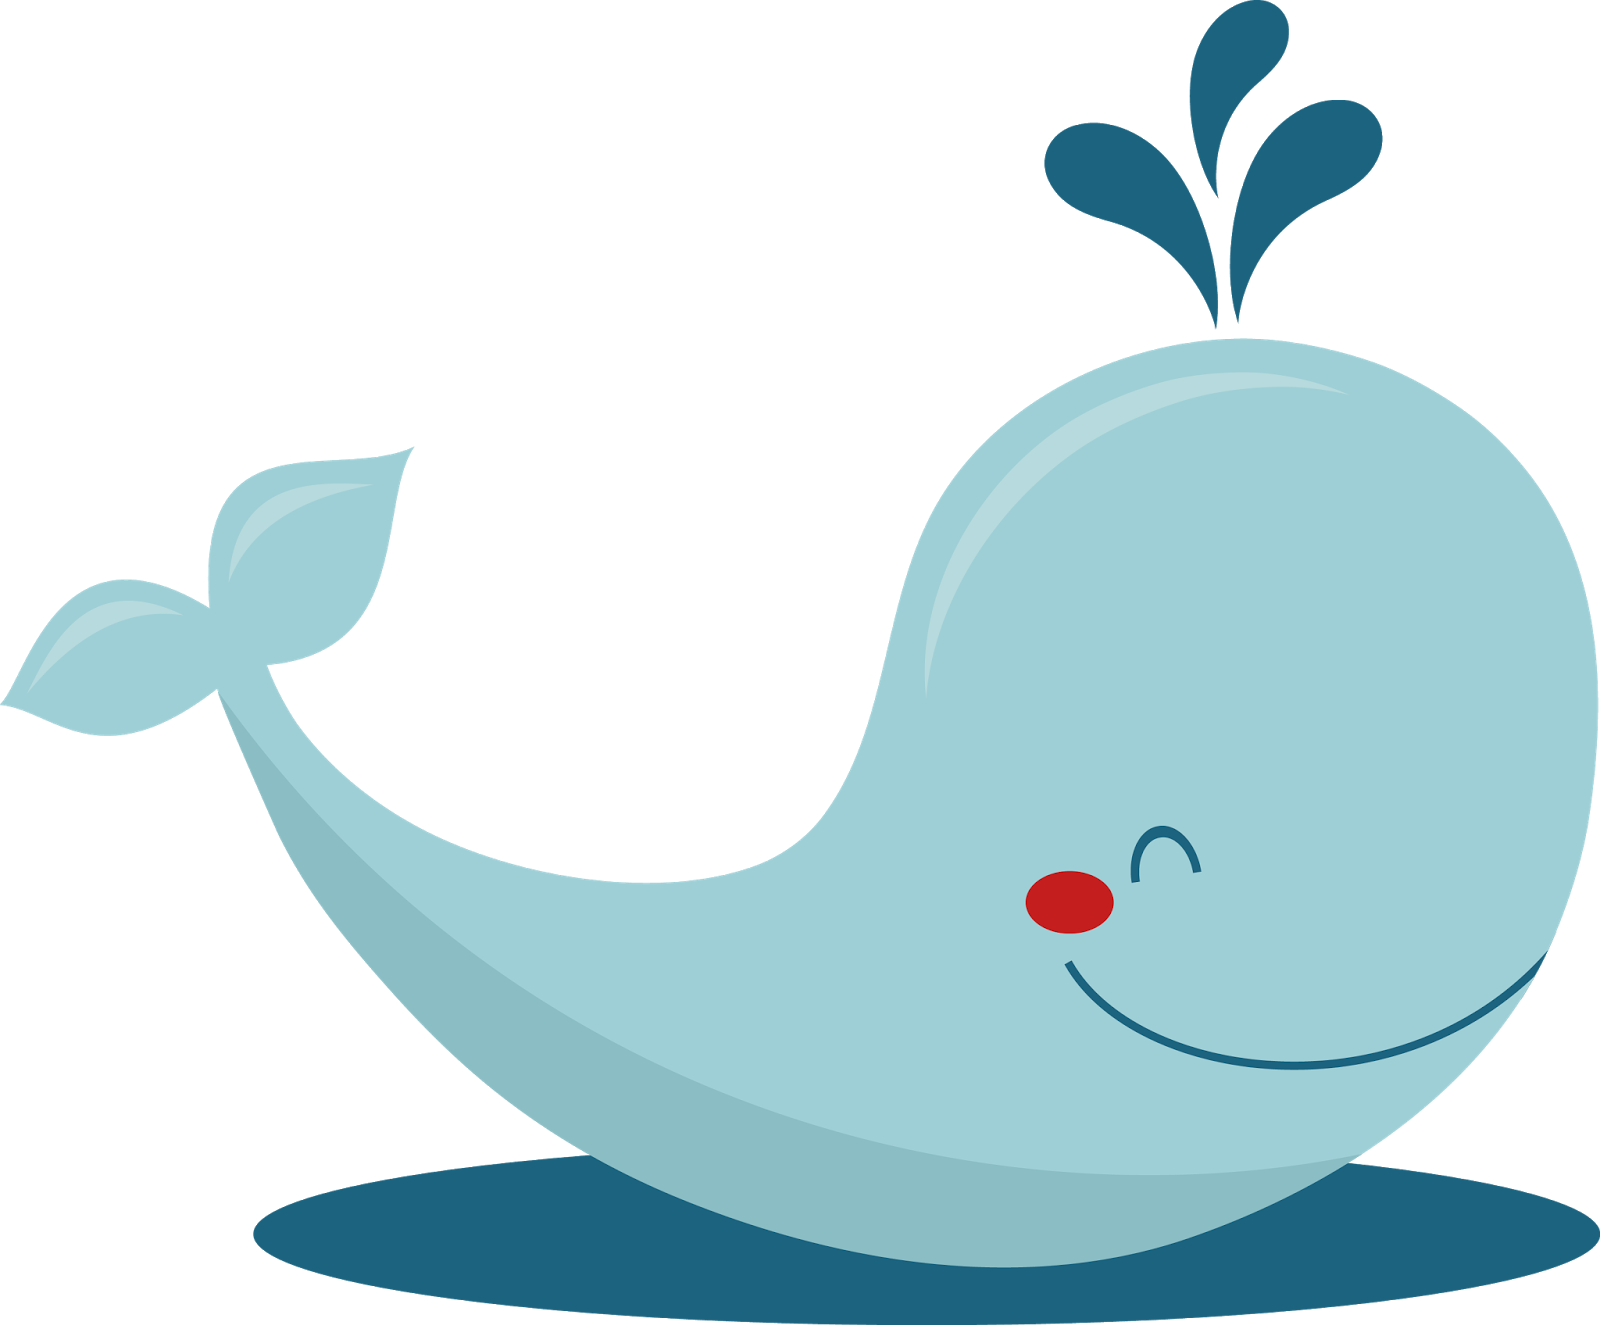 Water clipart whale. Animated ocean free download